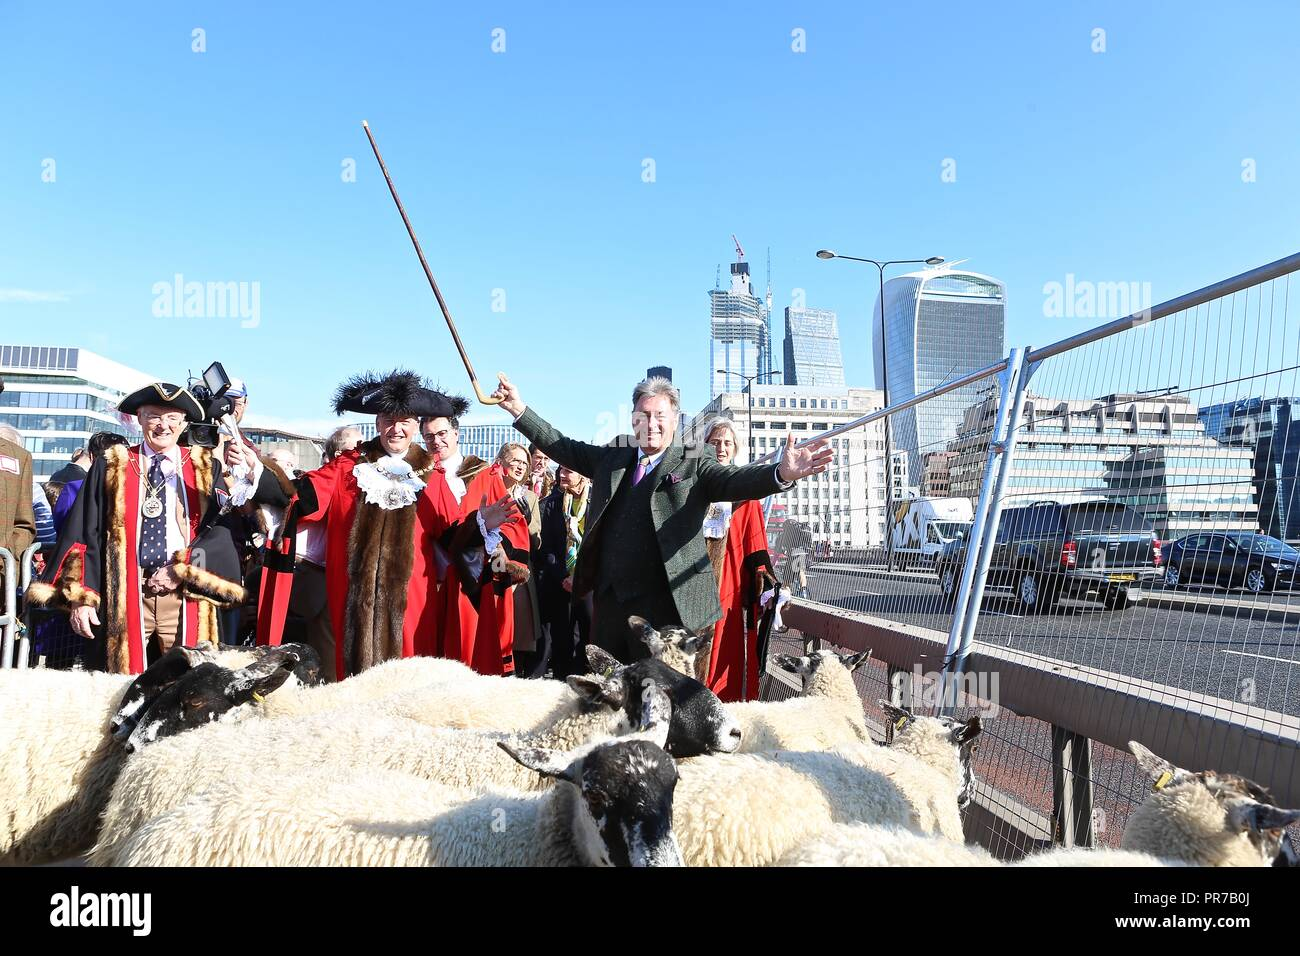 ALAN TITCHMARSH DRIVES SHEEP 2018 Stock Photo